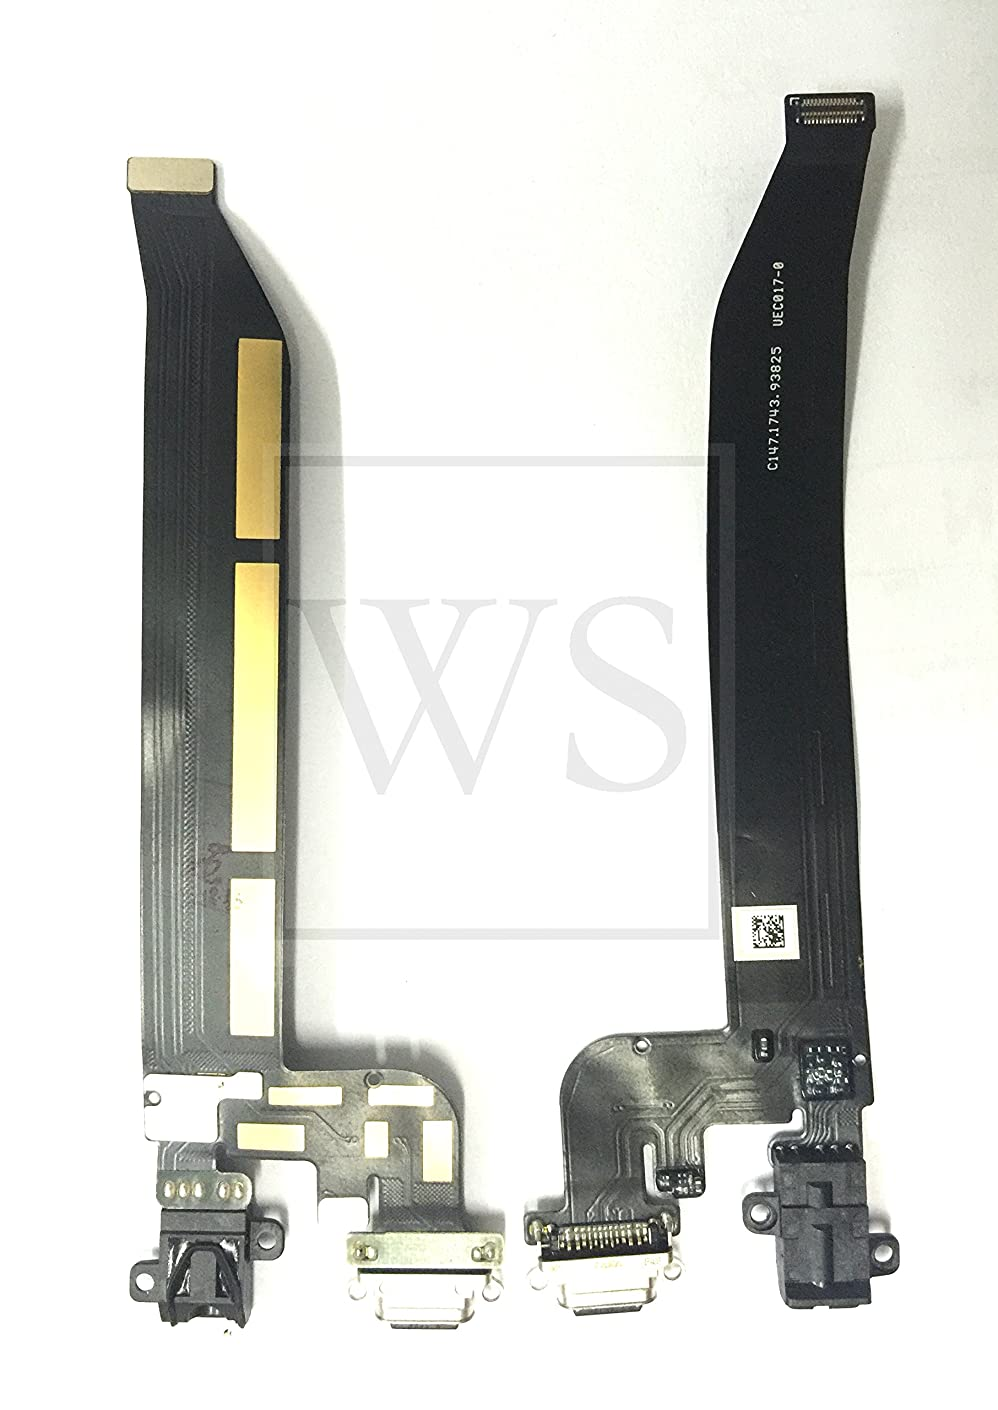 By Walking Slow- Replacement for OnePlus 5T A5010 Charging Port & Earphone Jack Flex Cable